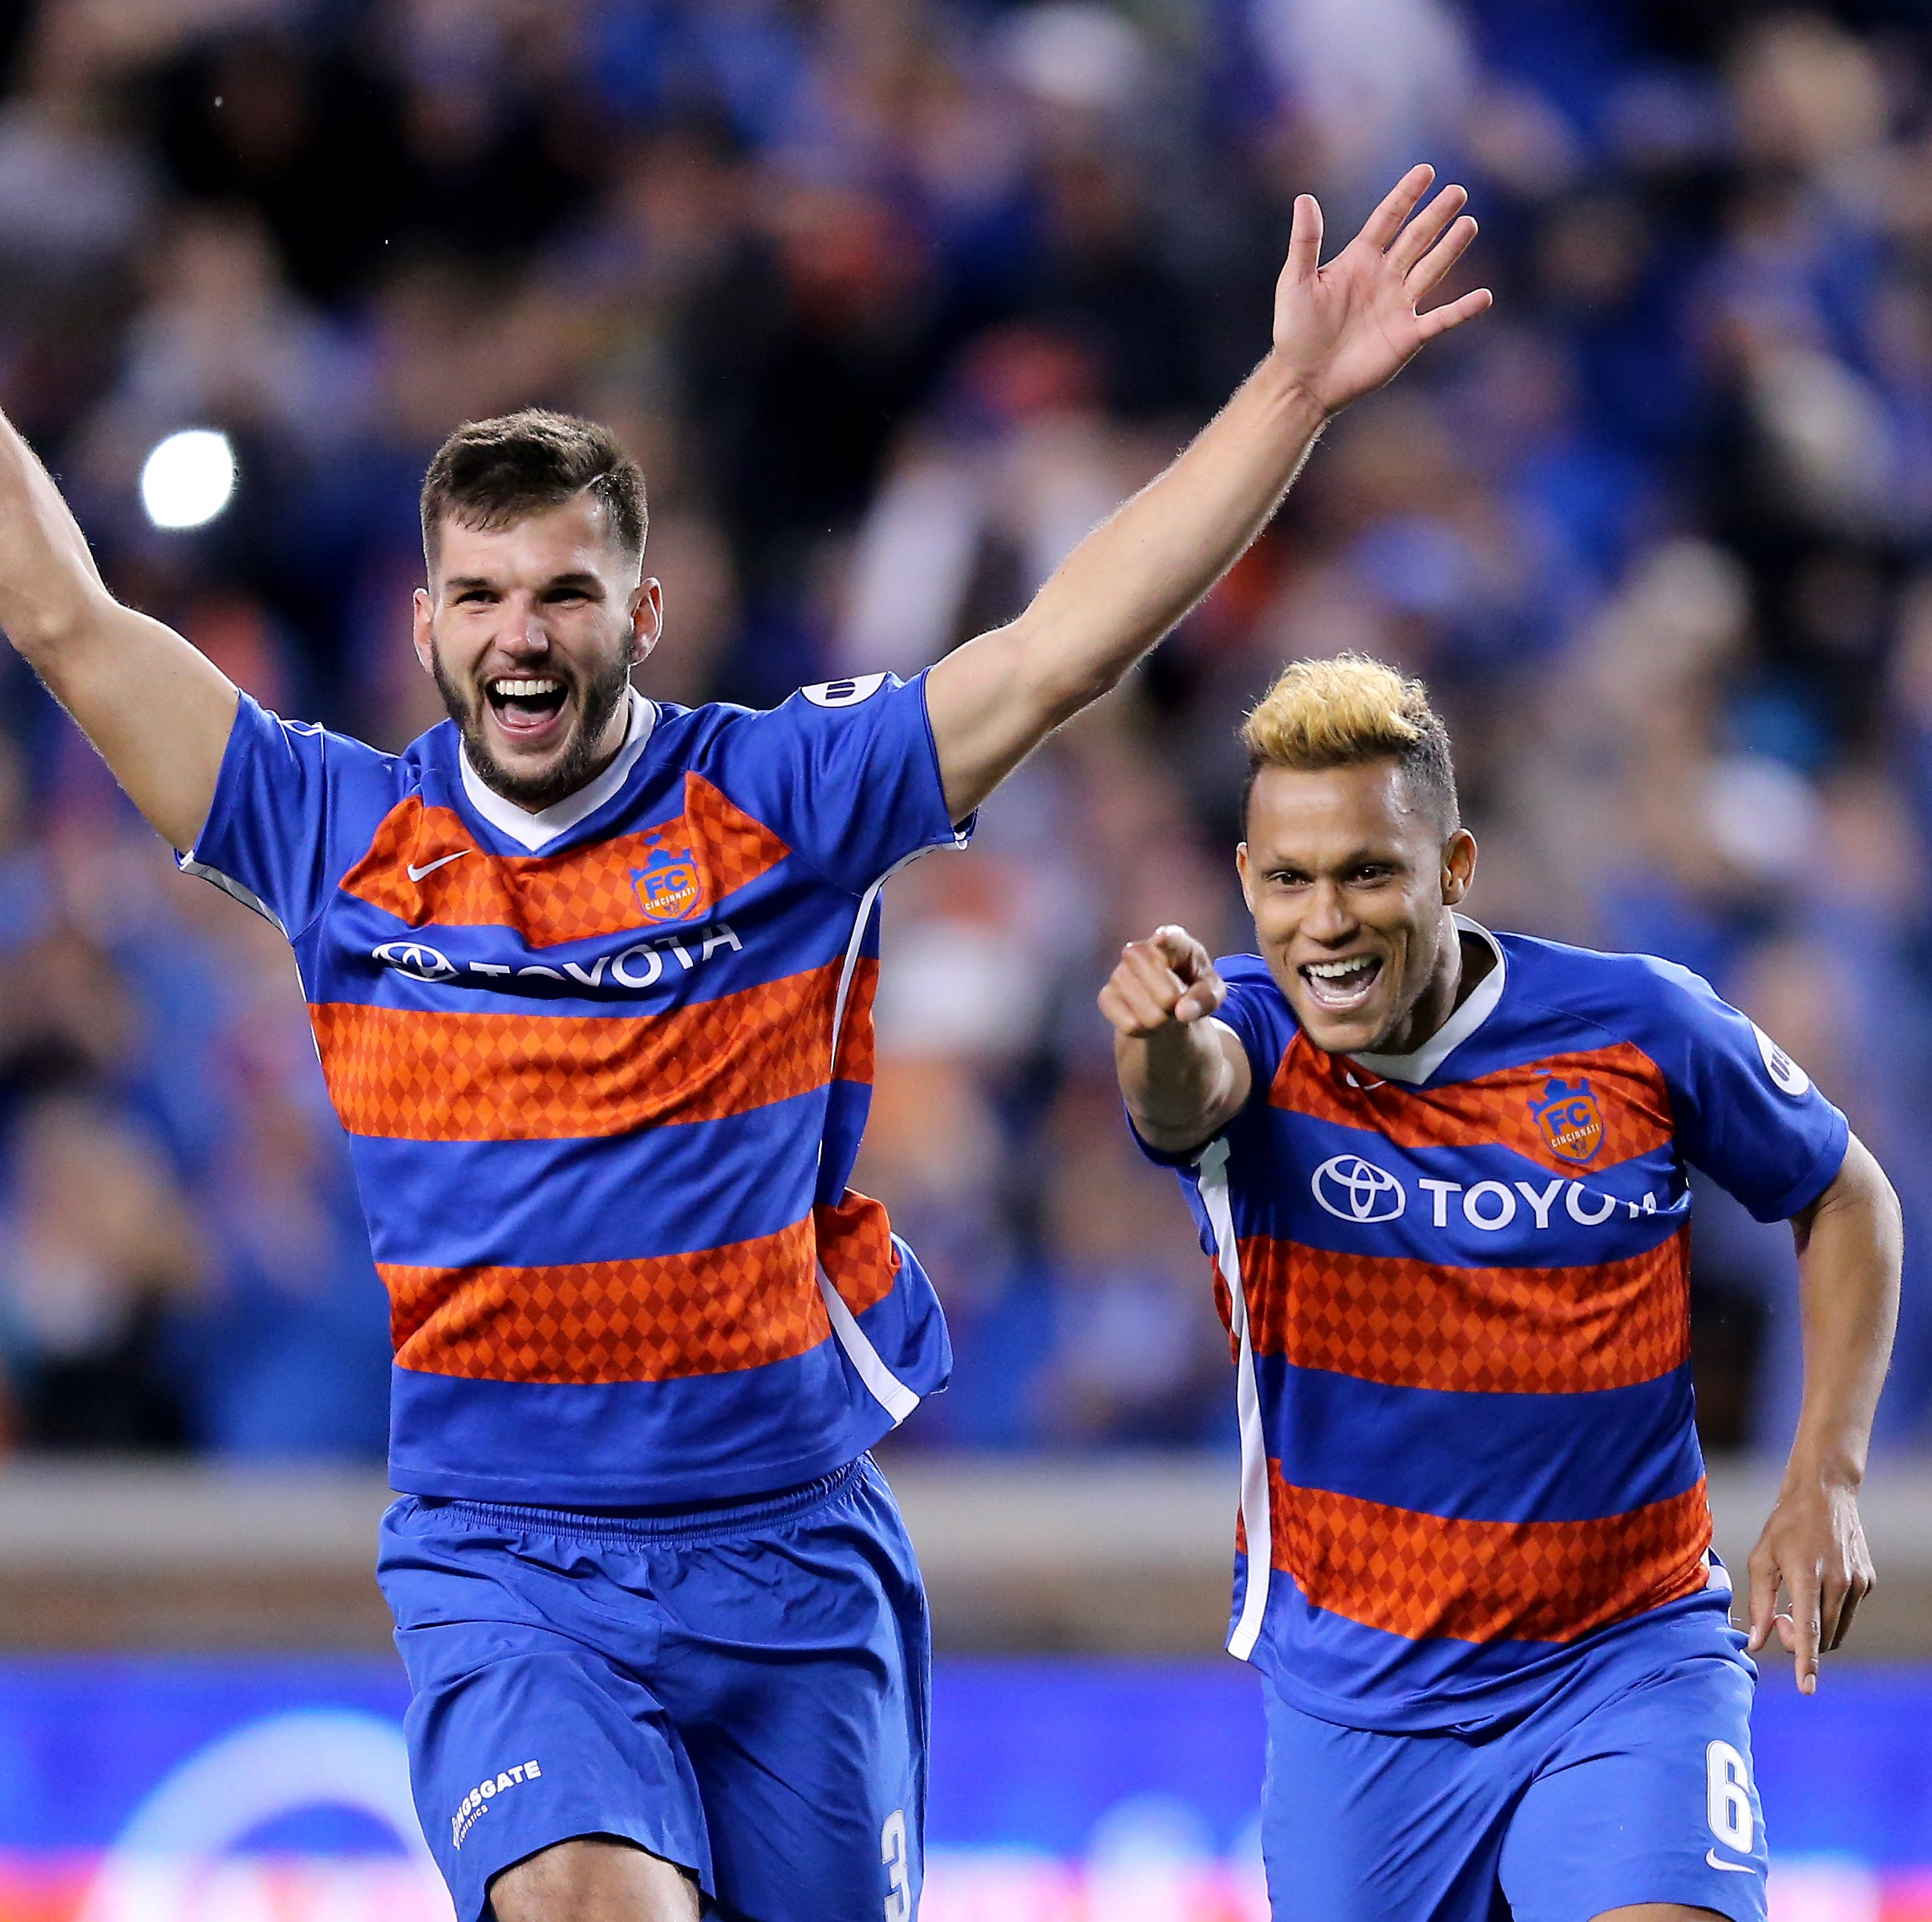 FC Cincinnati advances in USL Cup playoffs, defeating Nashville in penalty kicks, 6-5